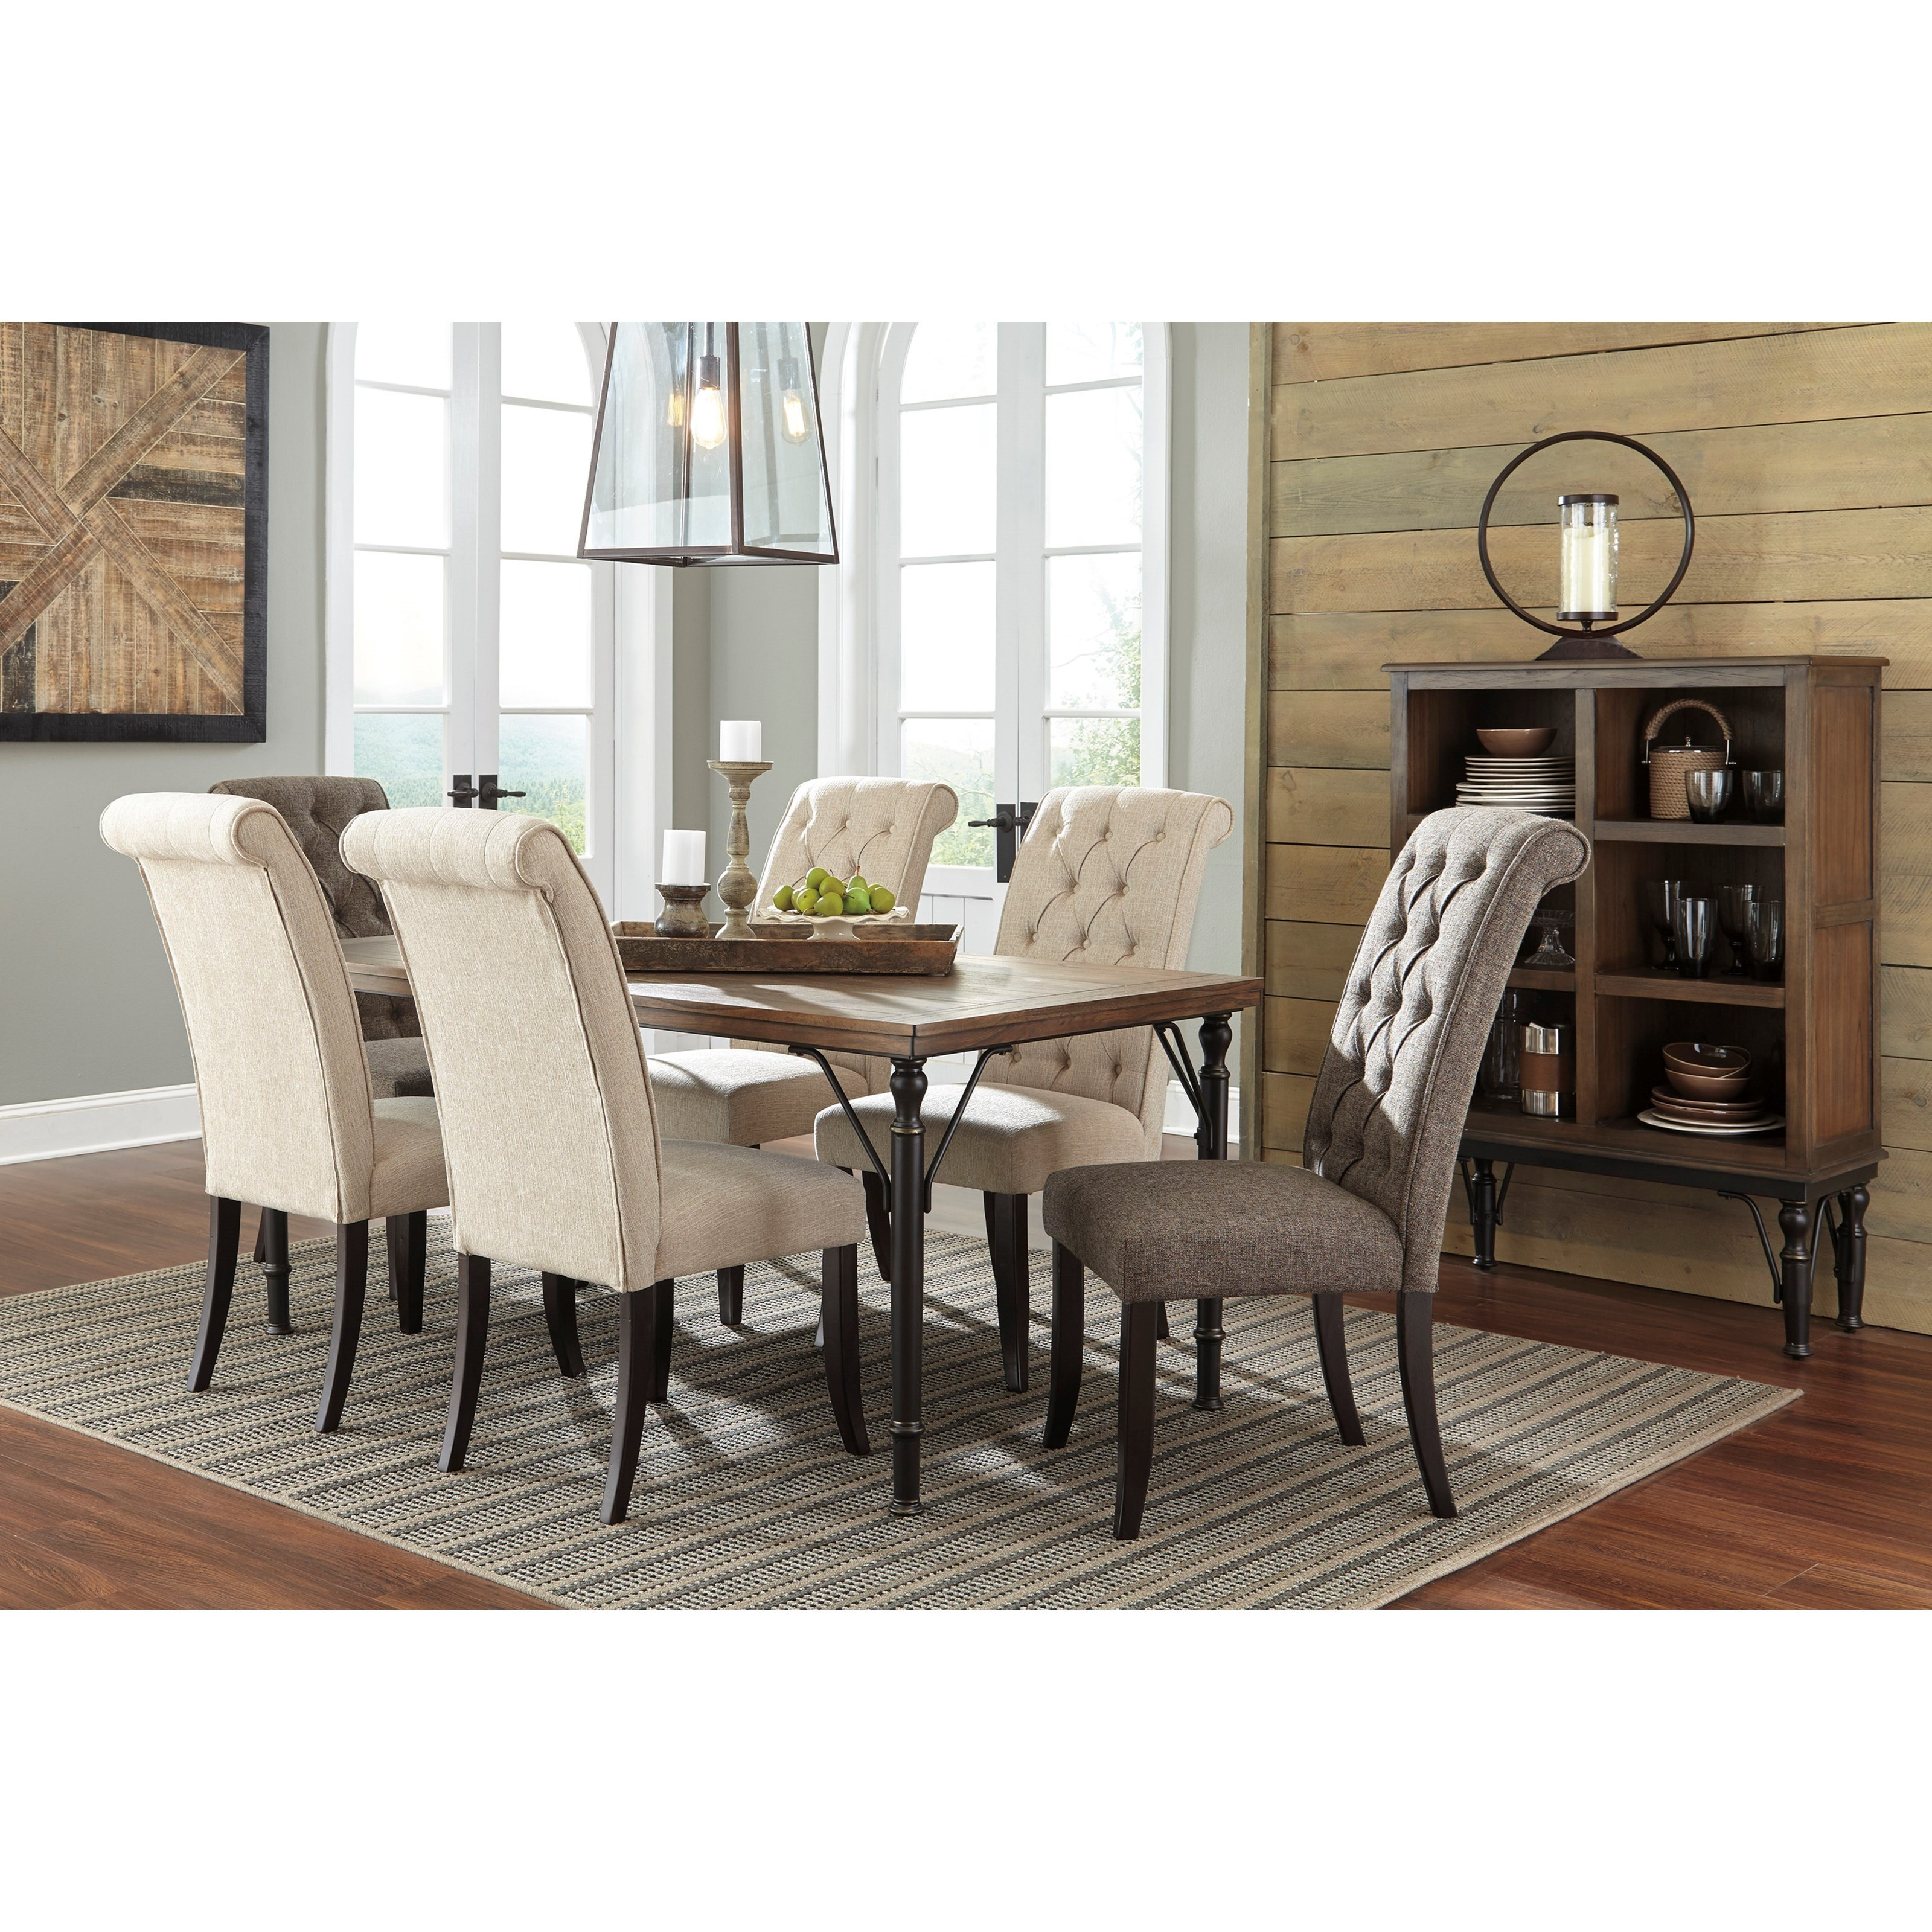 Tripton Extra Large Dining Bench: Signature Design By Ashley Tripton Dining Upholstered Side